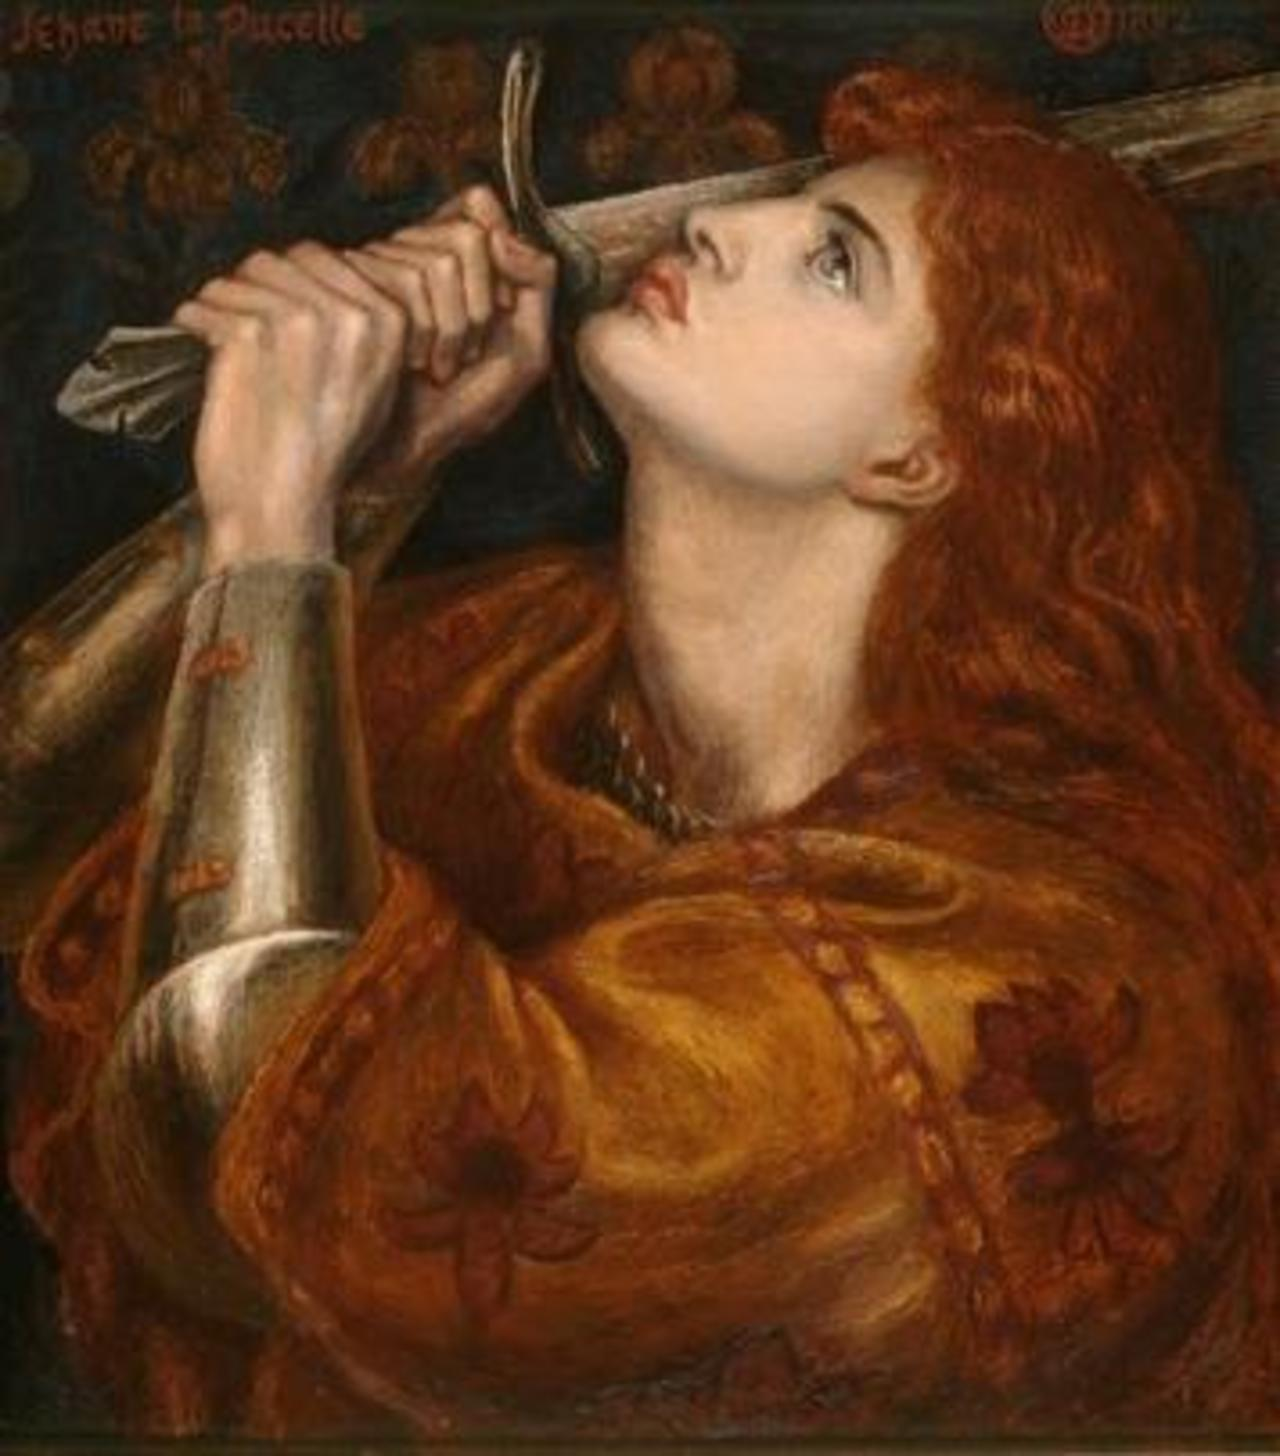 This painting of Joan of Arc was found on Rossetti's easel upon his death in 1882: http://bit.ly/1Ao24VK #art http://t.co/kYxsVjfAer